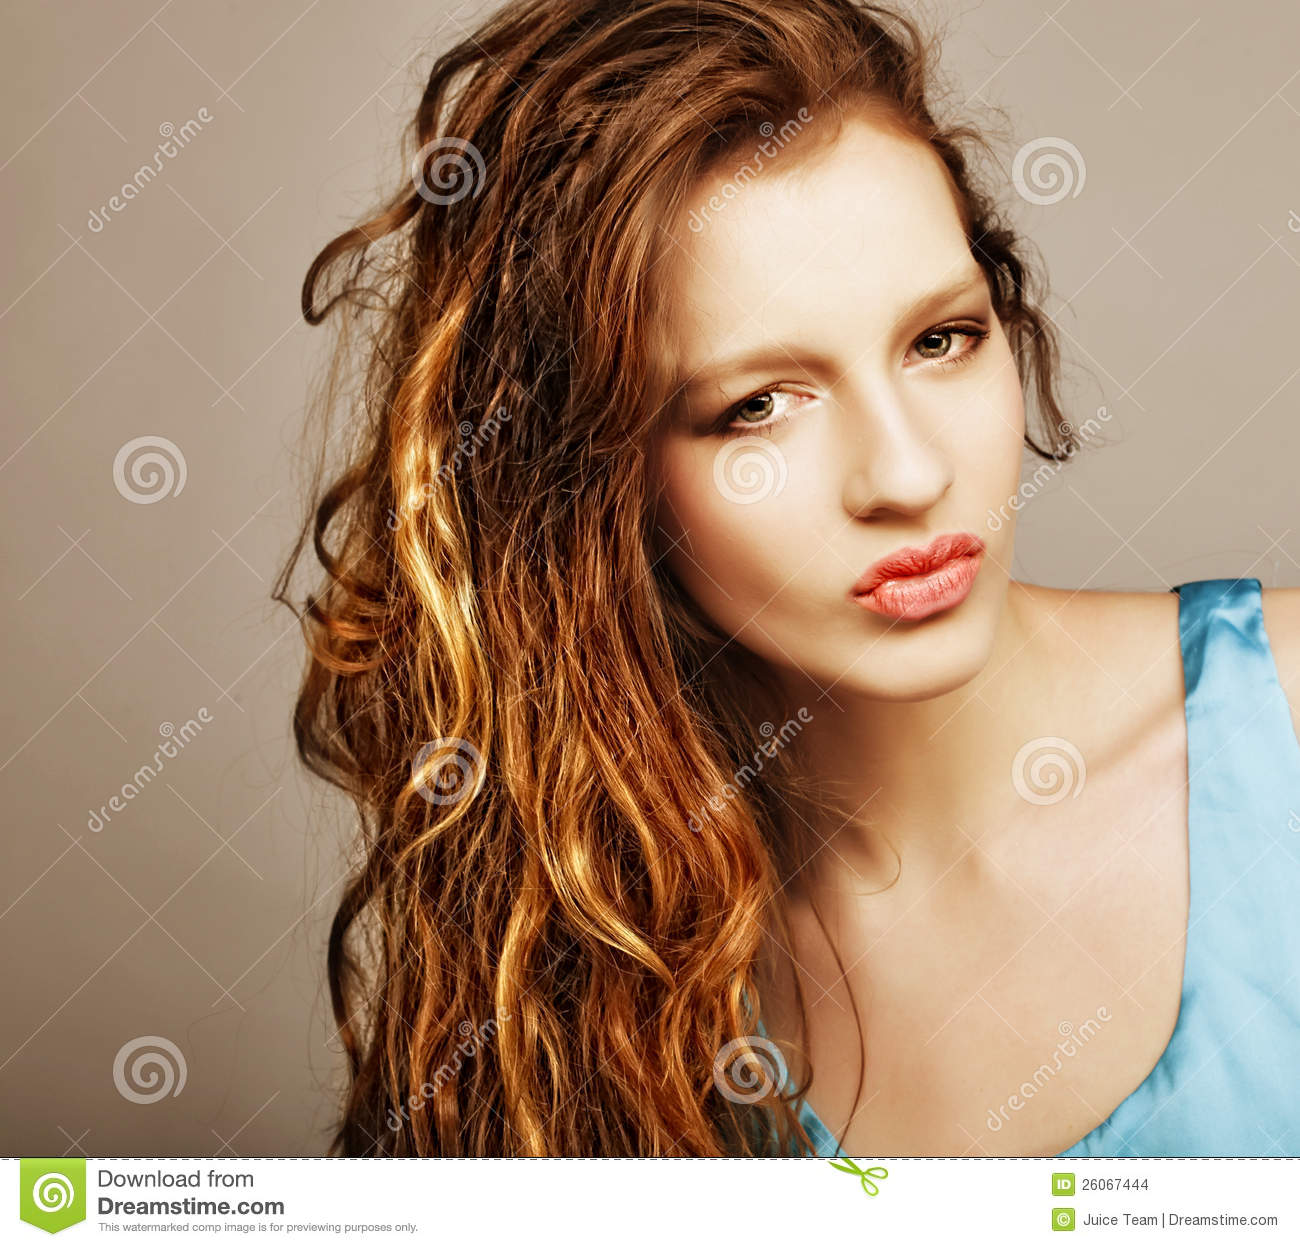 Woman with beautiful long blond curly hairs